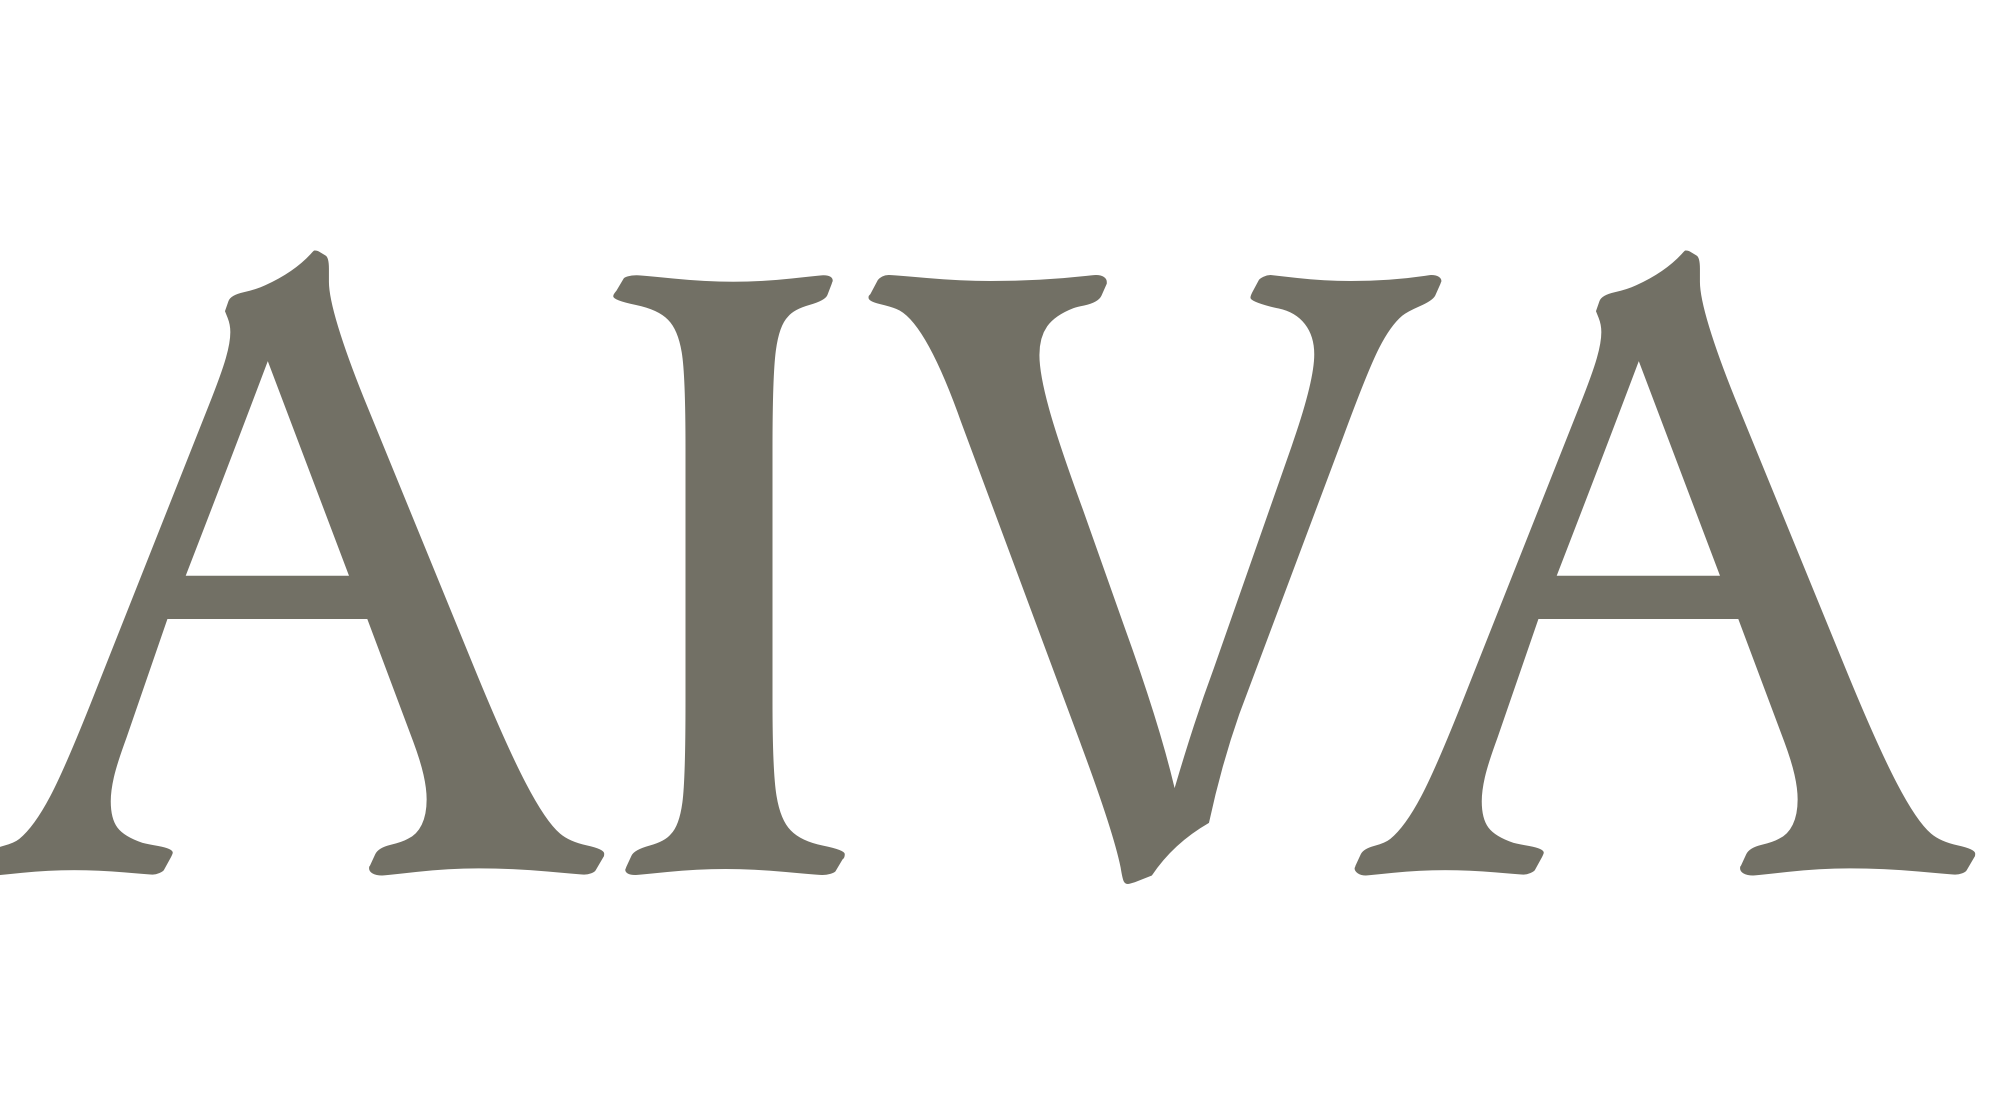 Aiva - Name's Meaning of Aiva